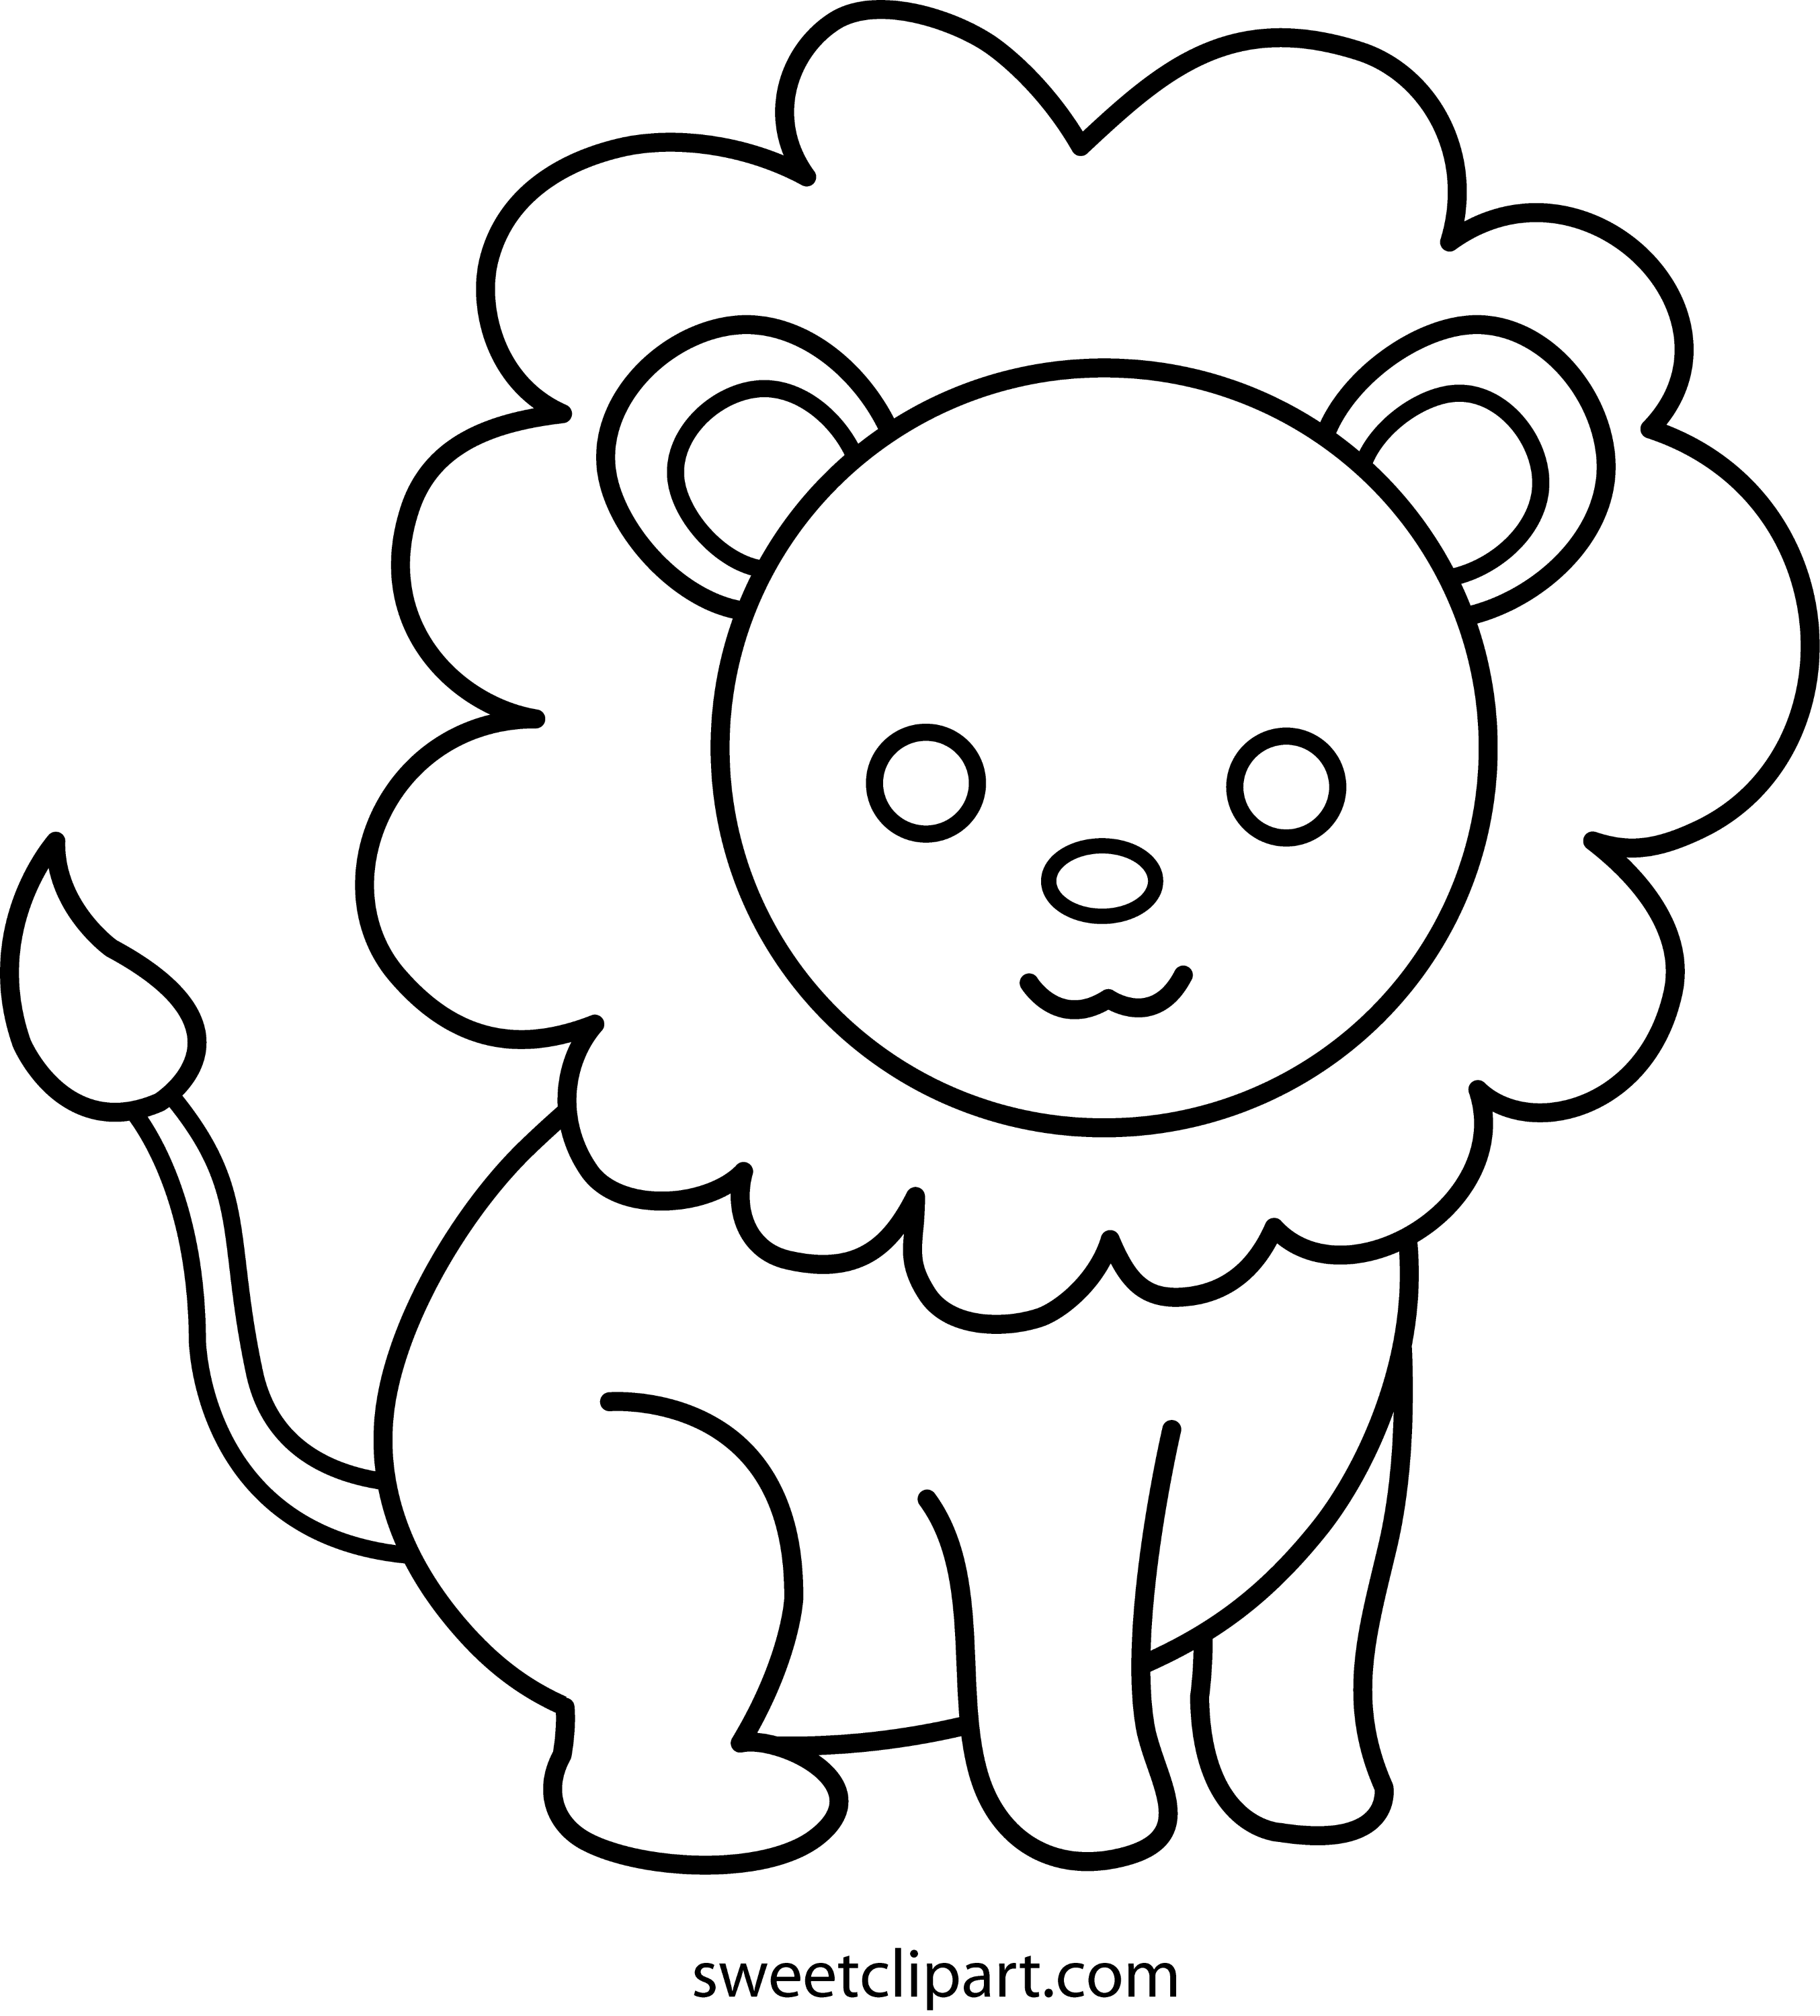 baby lion coloring pictures babyliaon coloring pages learny kids baby lion coloring pictures